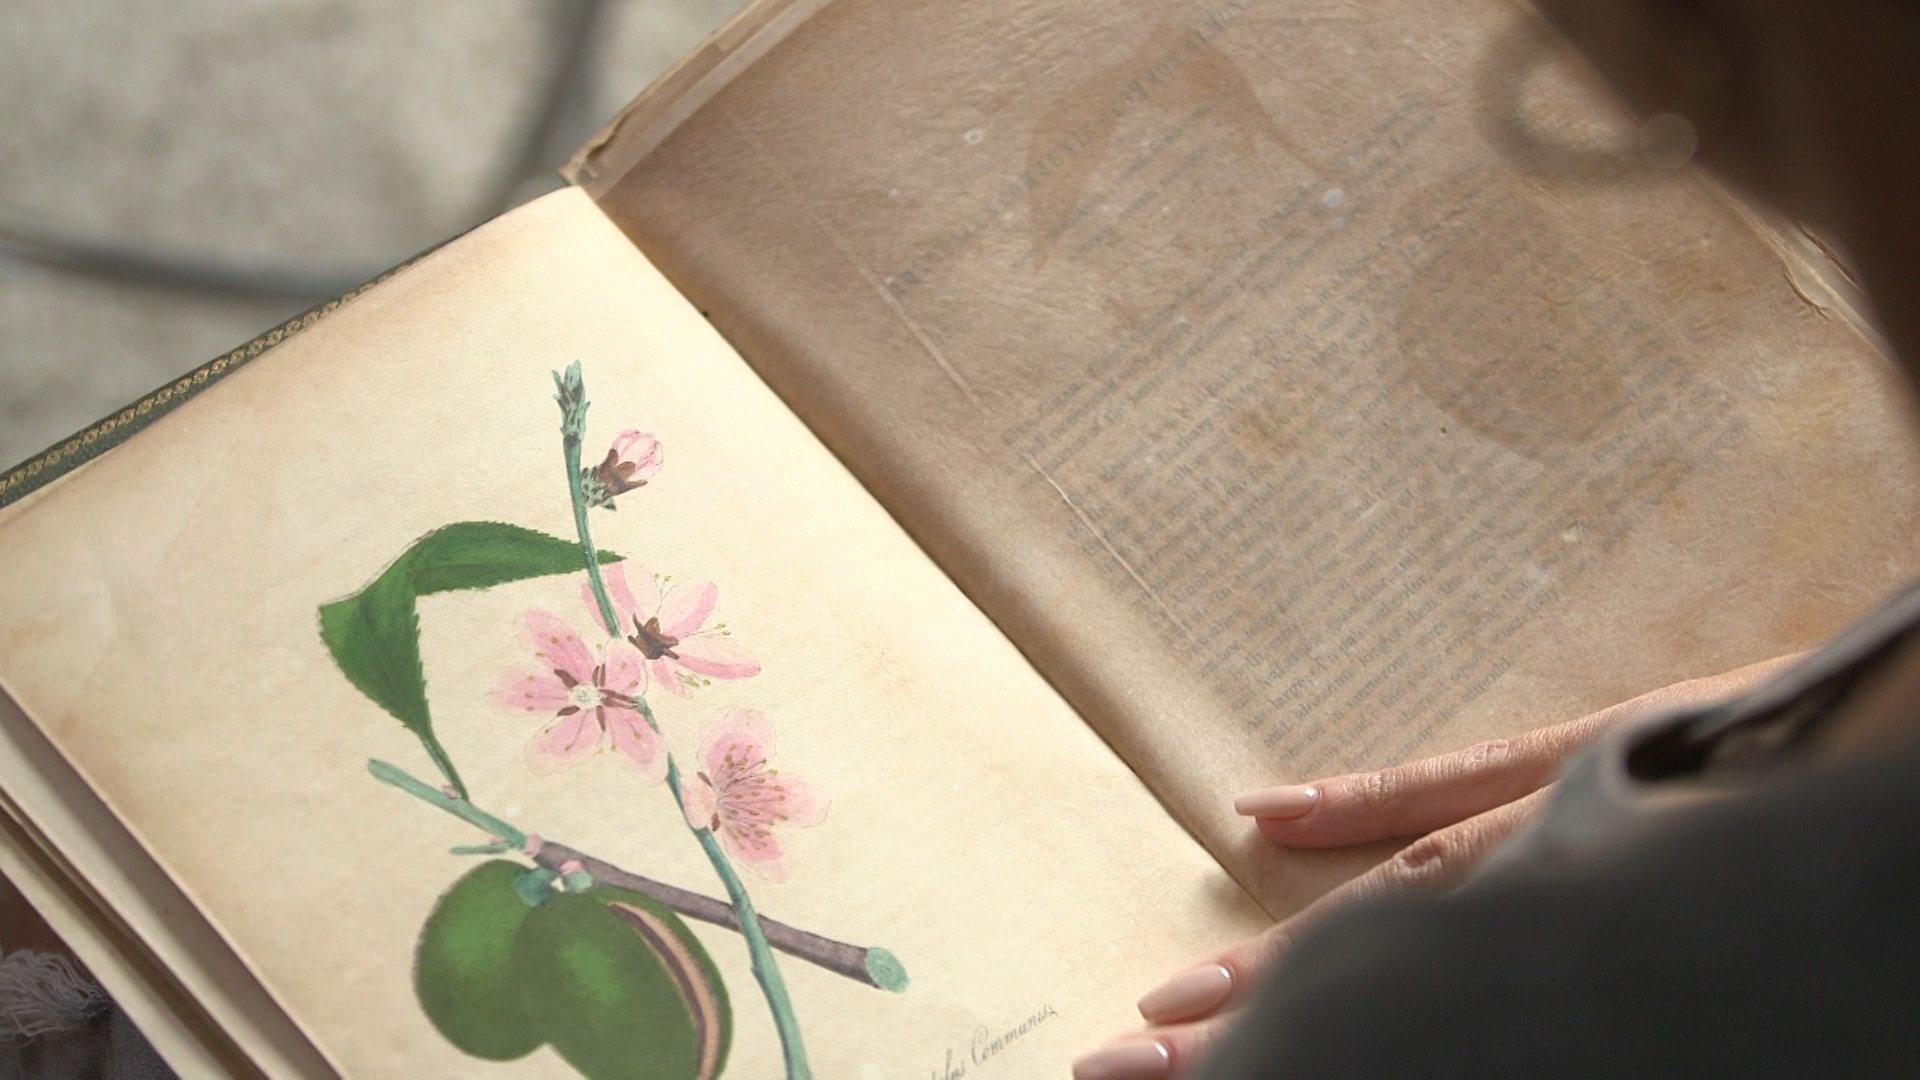 Floriagraphy Joanna Pascale reading an old book about flowers.jpg